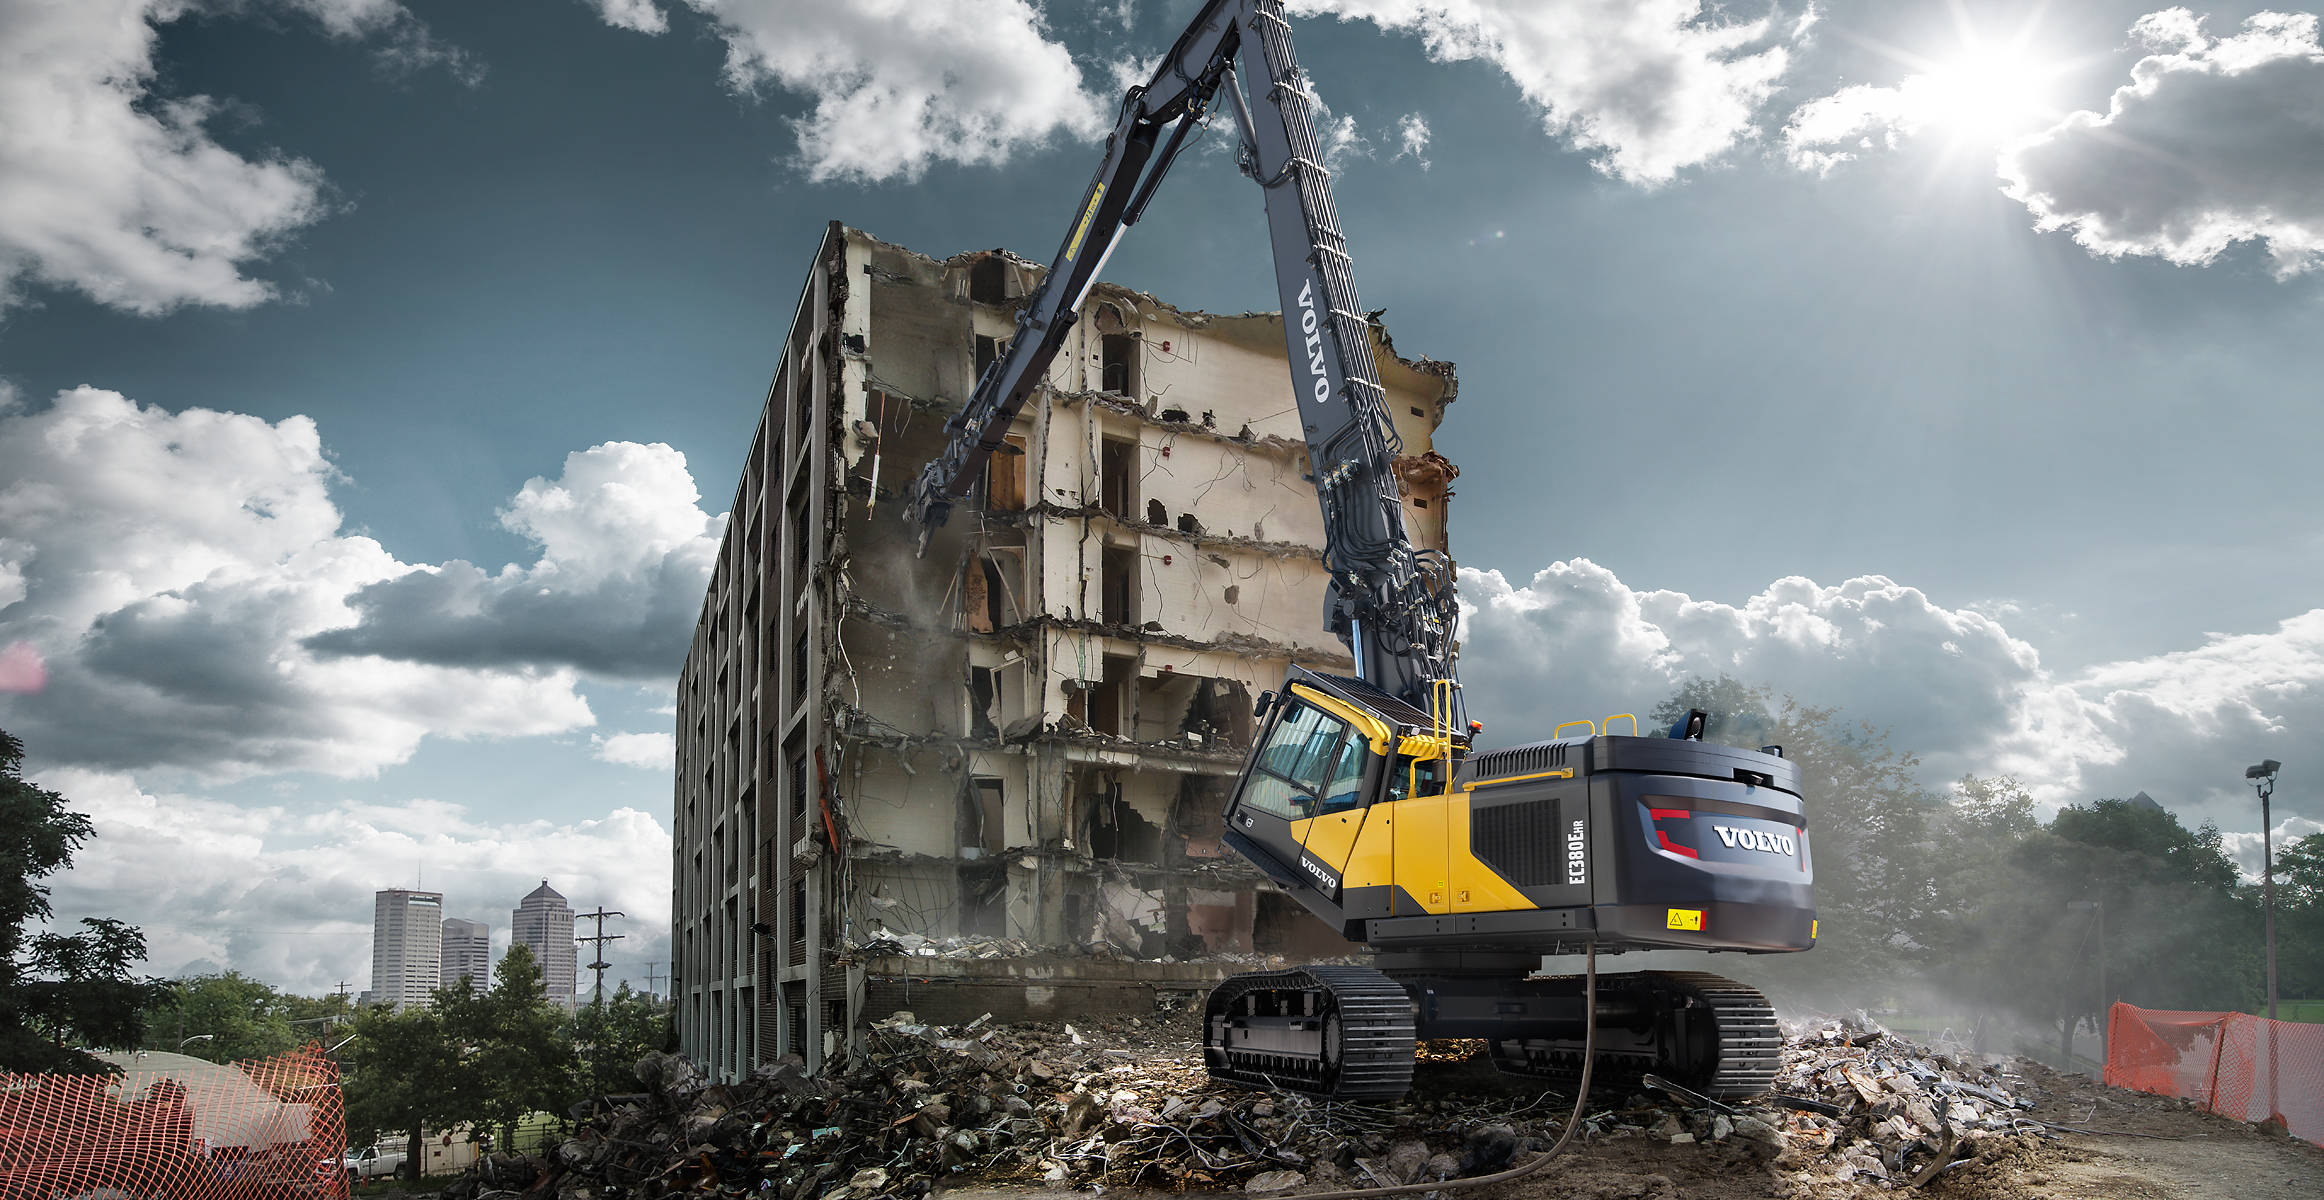 Demolition Equipment | EC380E HR | Overview